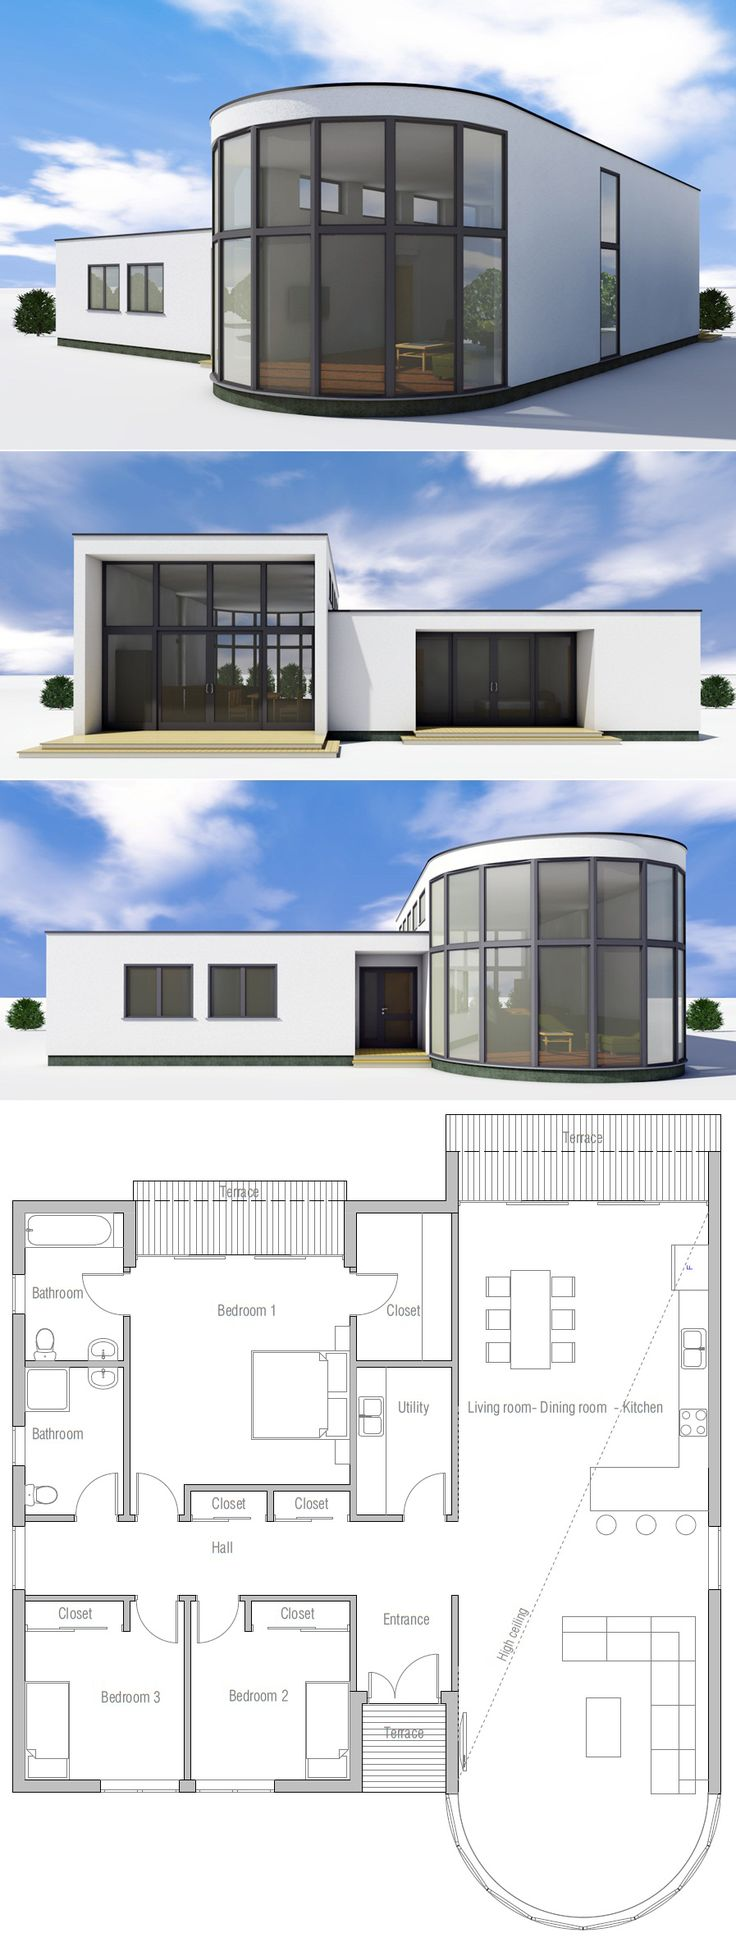 Small Modern House Plans modern n simple house plans plain simple floor plans for a simple house designs and ideas Modern House Plan Just Add A Basement And It Would Be Perfect